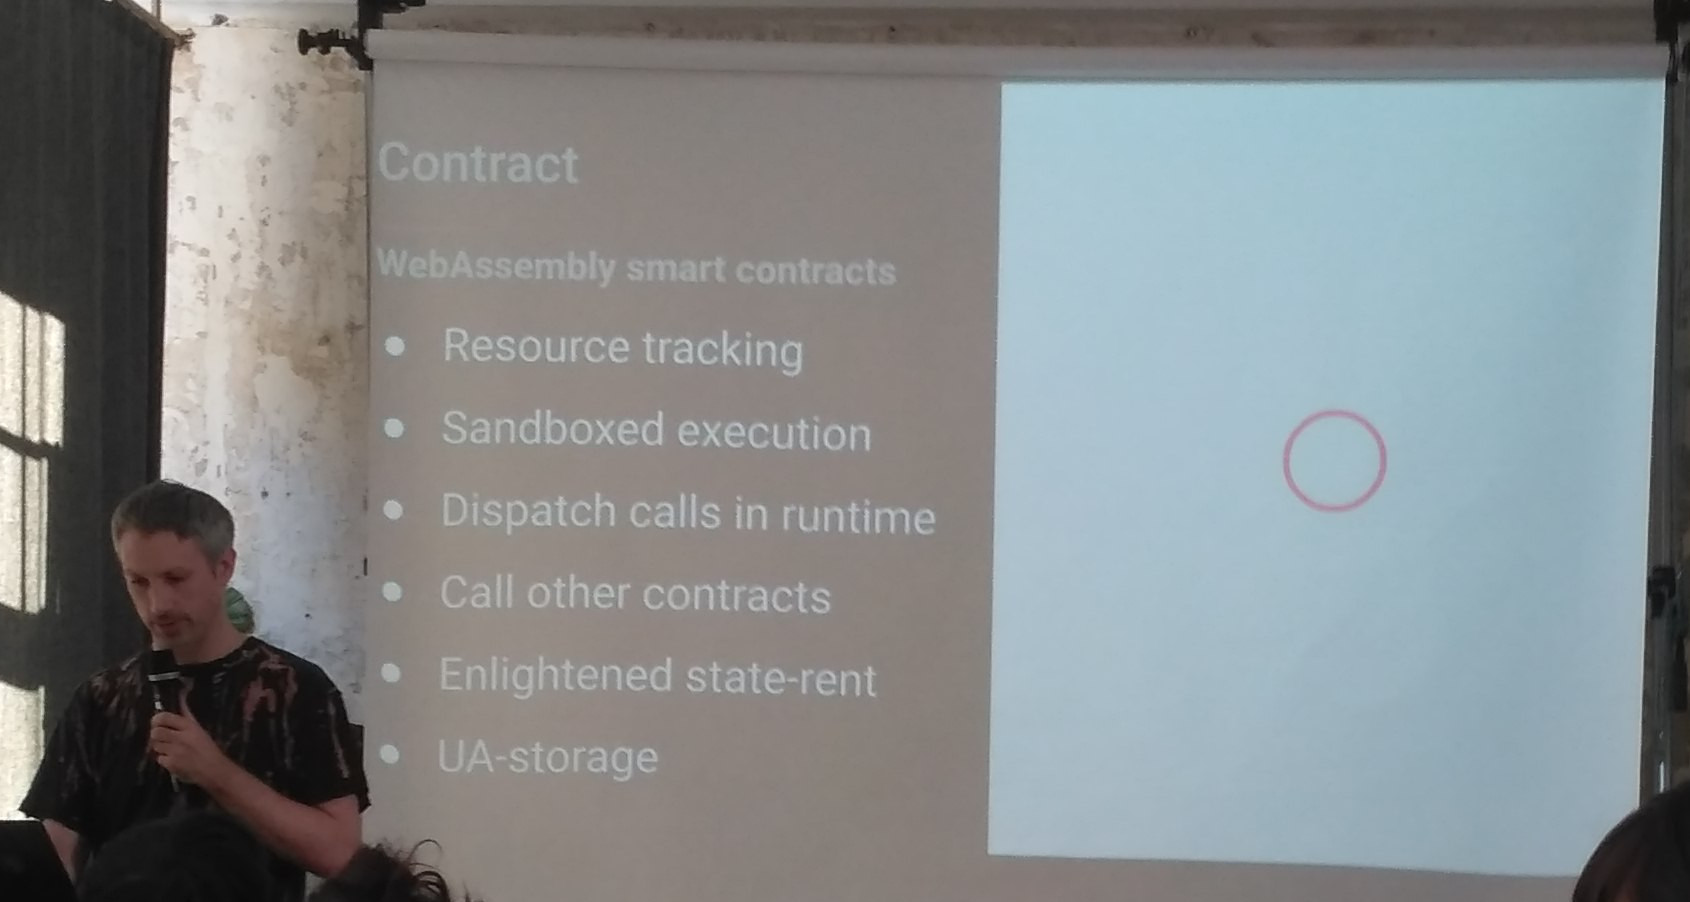 Contract slide